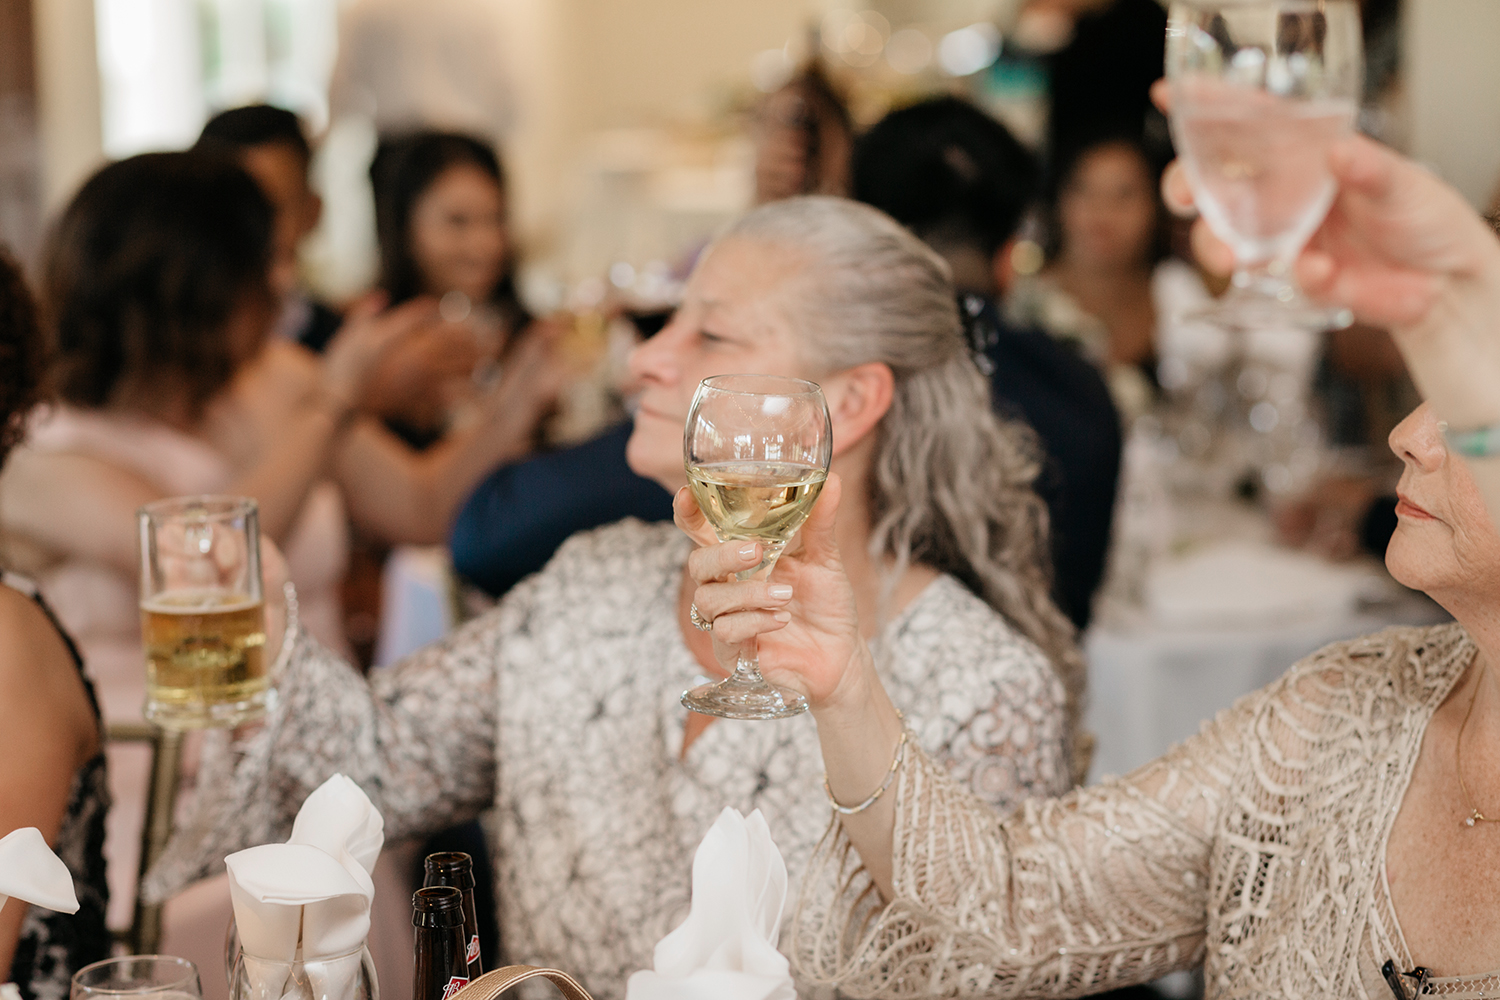 Guests lifting up wine glasses during a toast at a wedding in Saratoga Country Club.